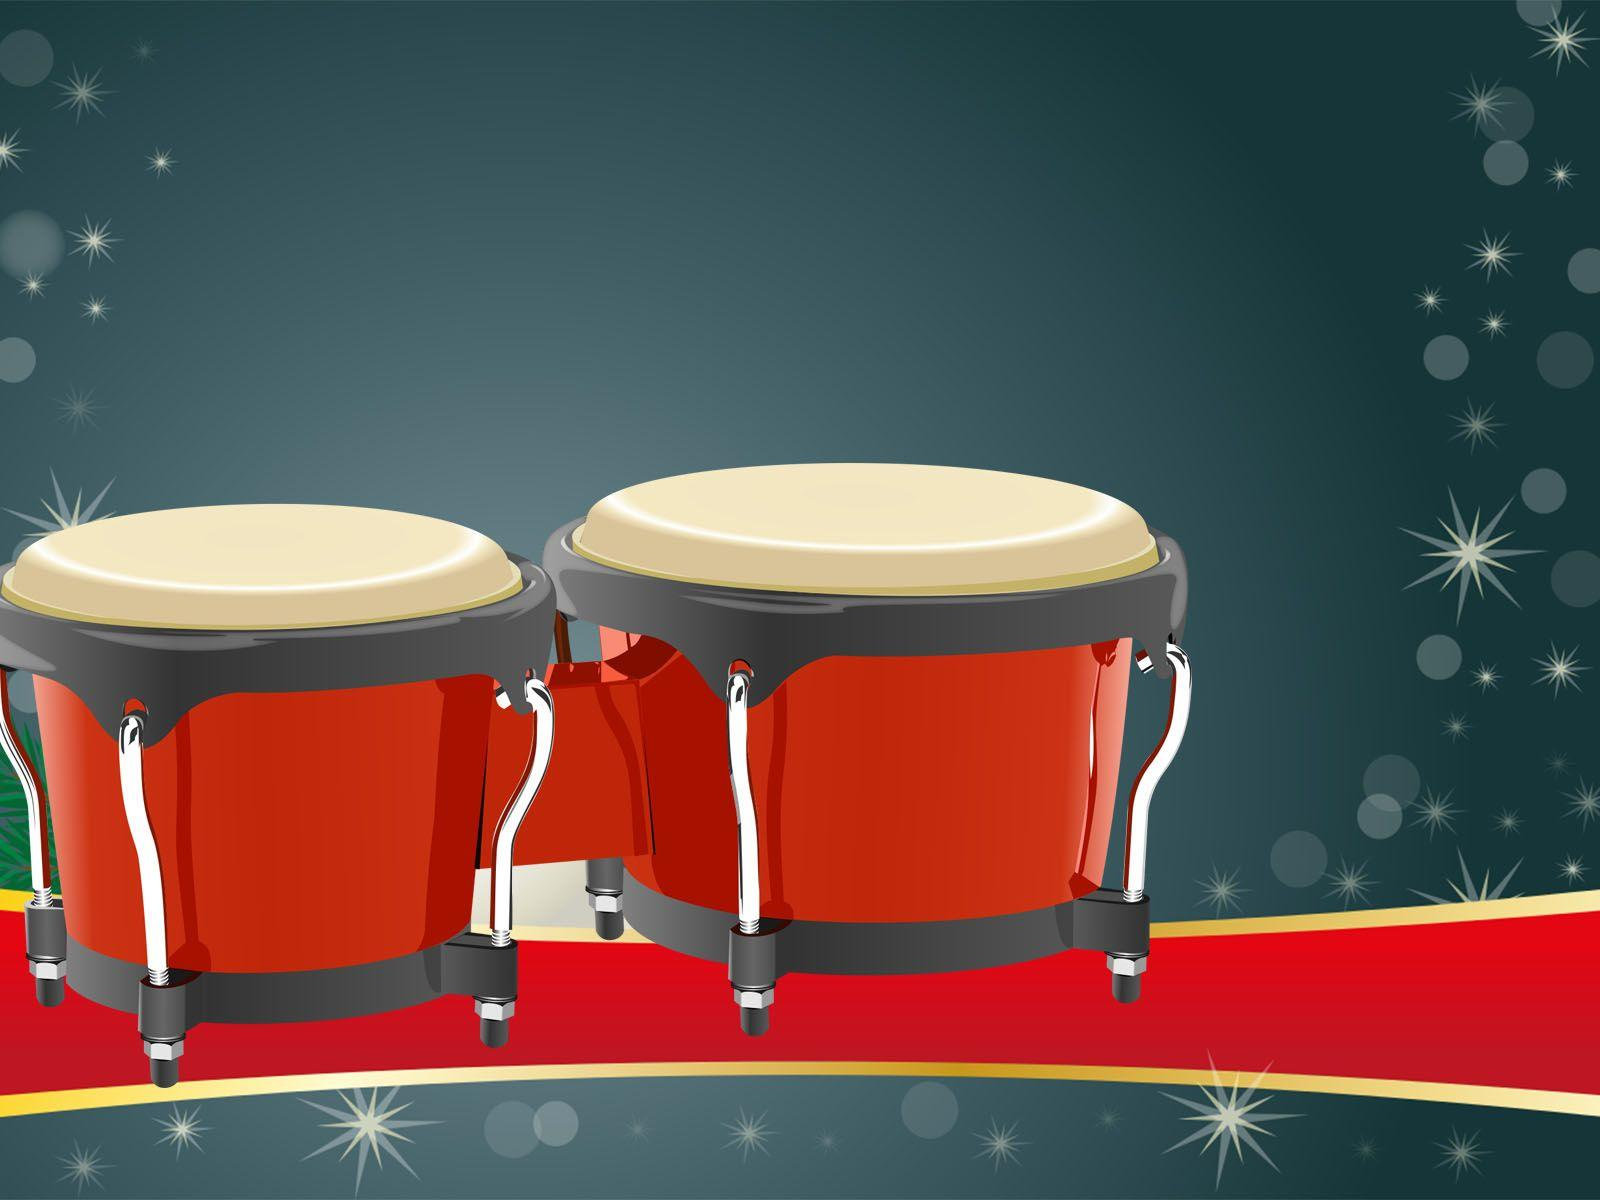 Bongos Instrument Powerpoint Backgrounds is a free border backgrounds